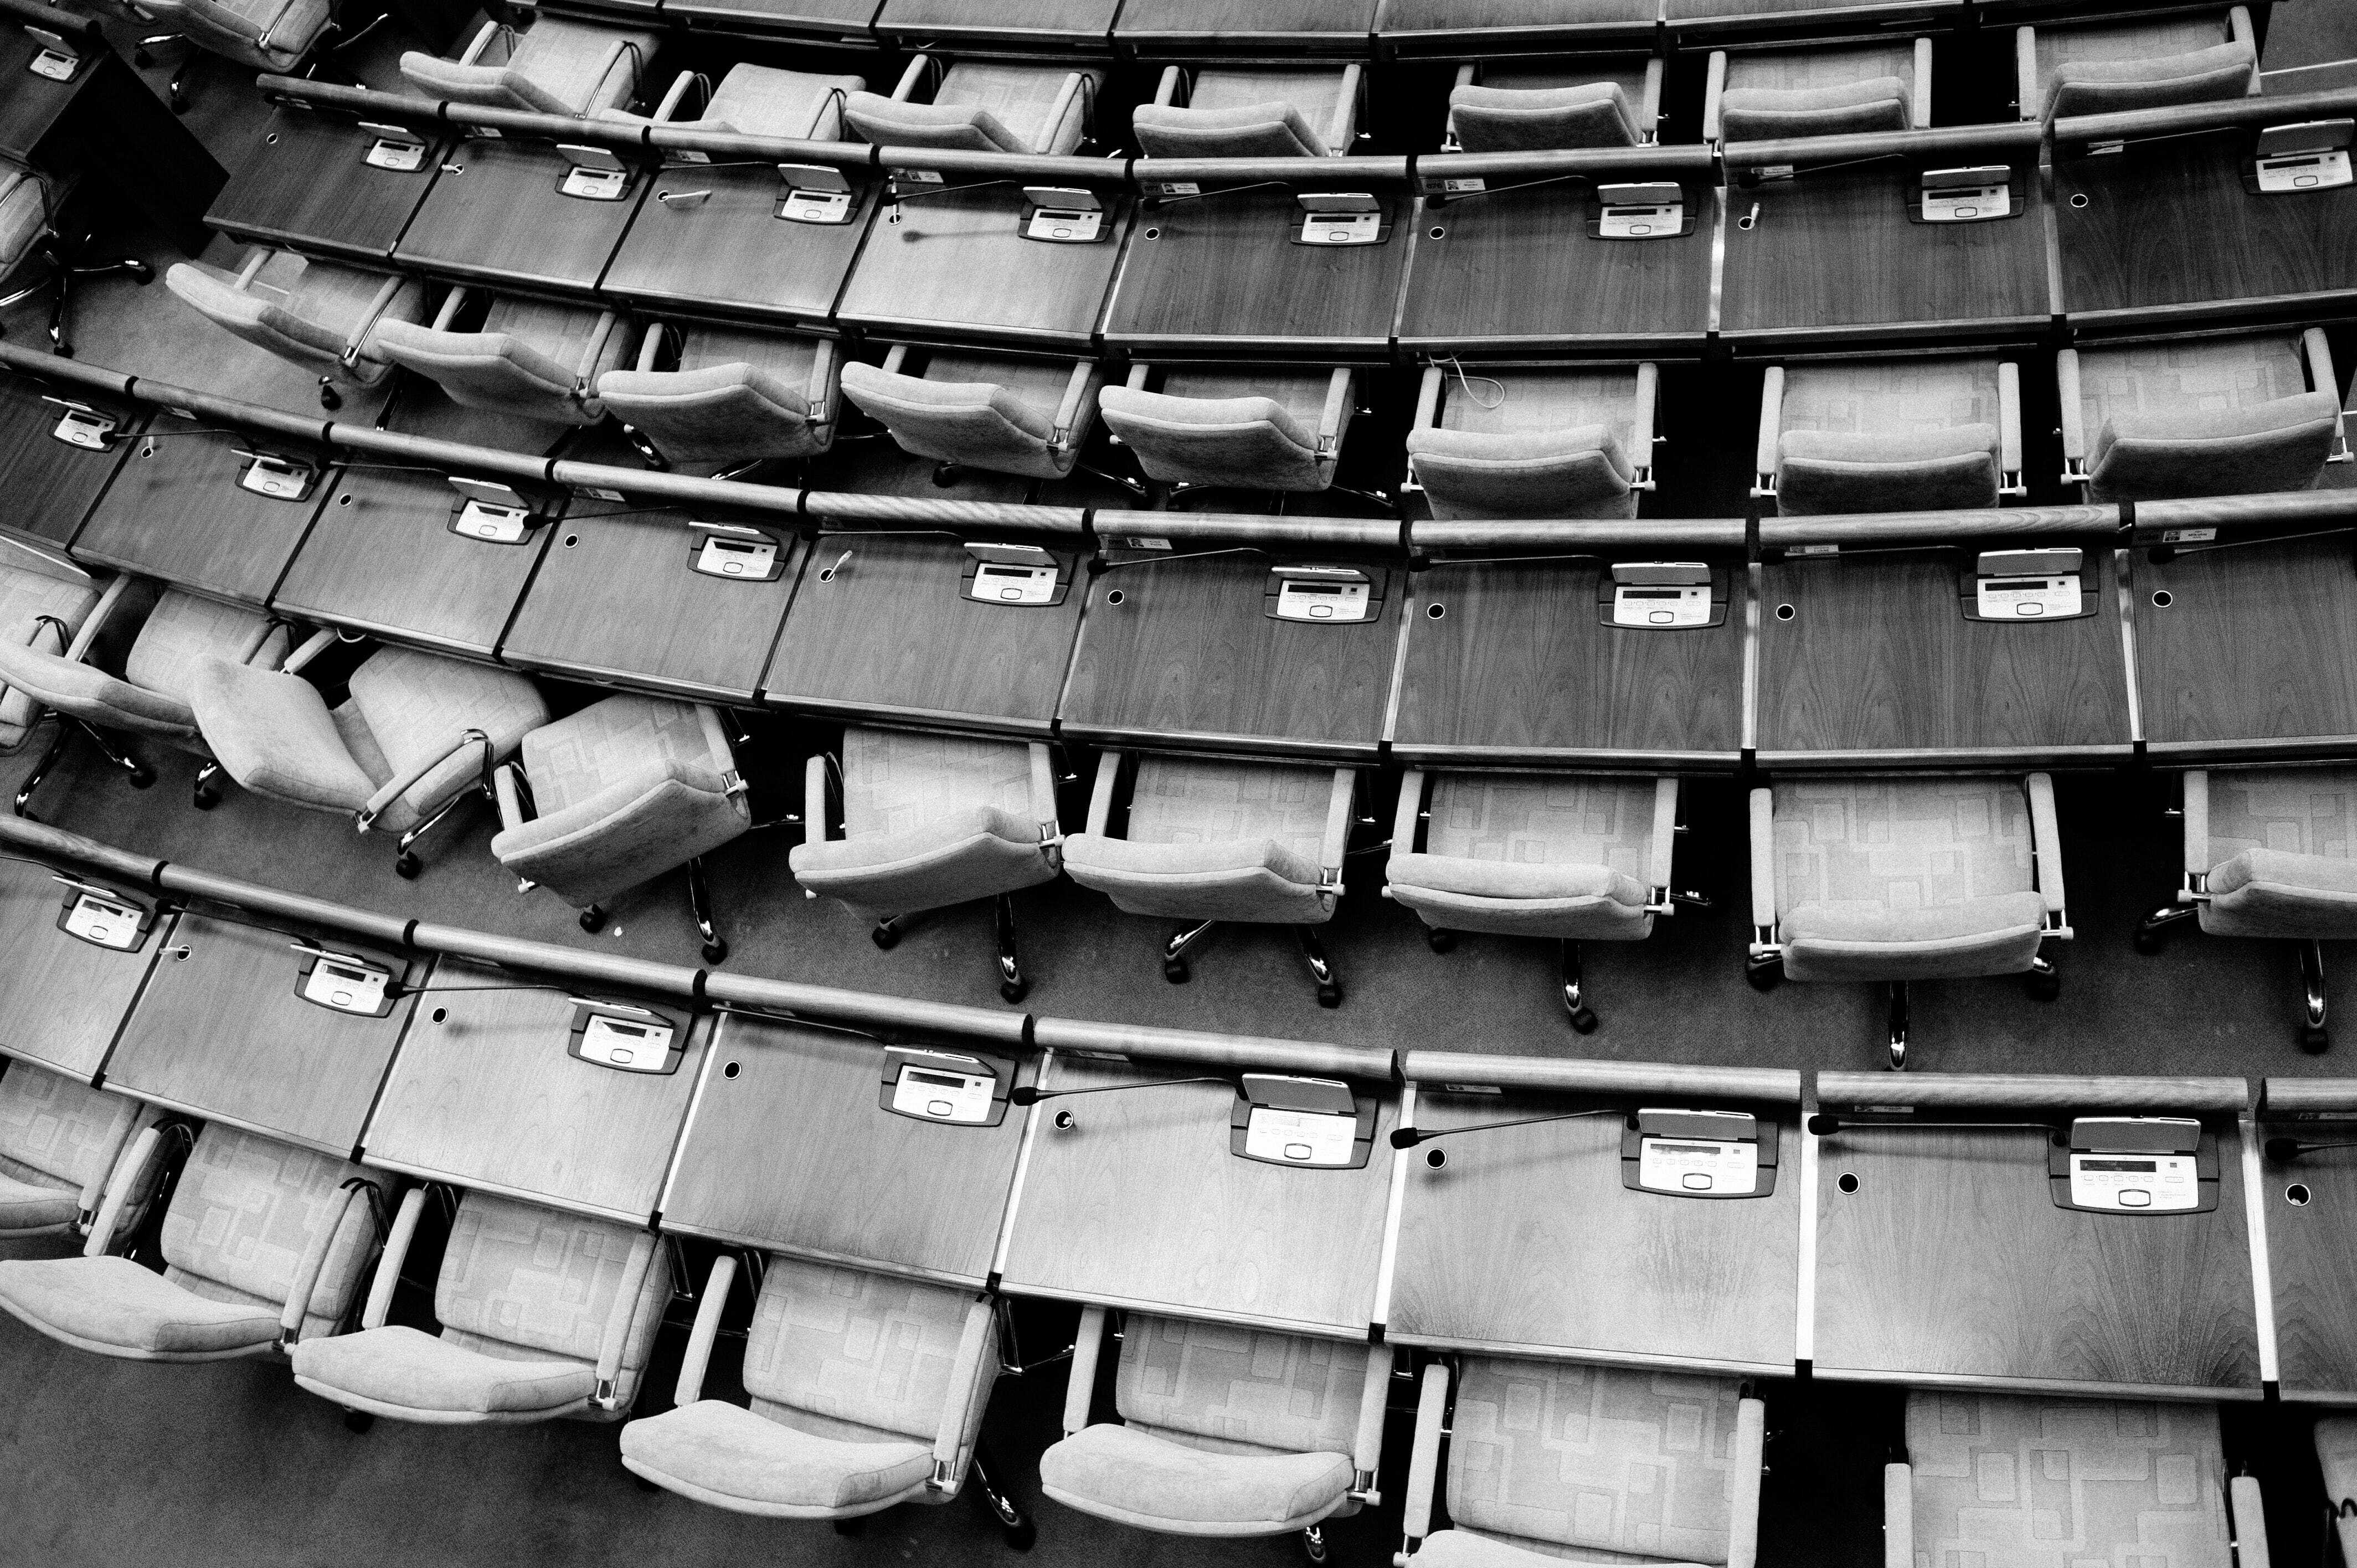 black-and-white aerial view of desks and chairs